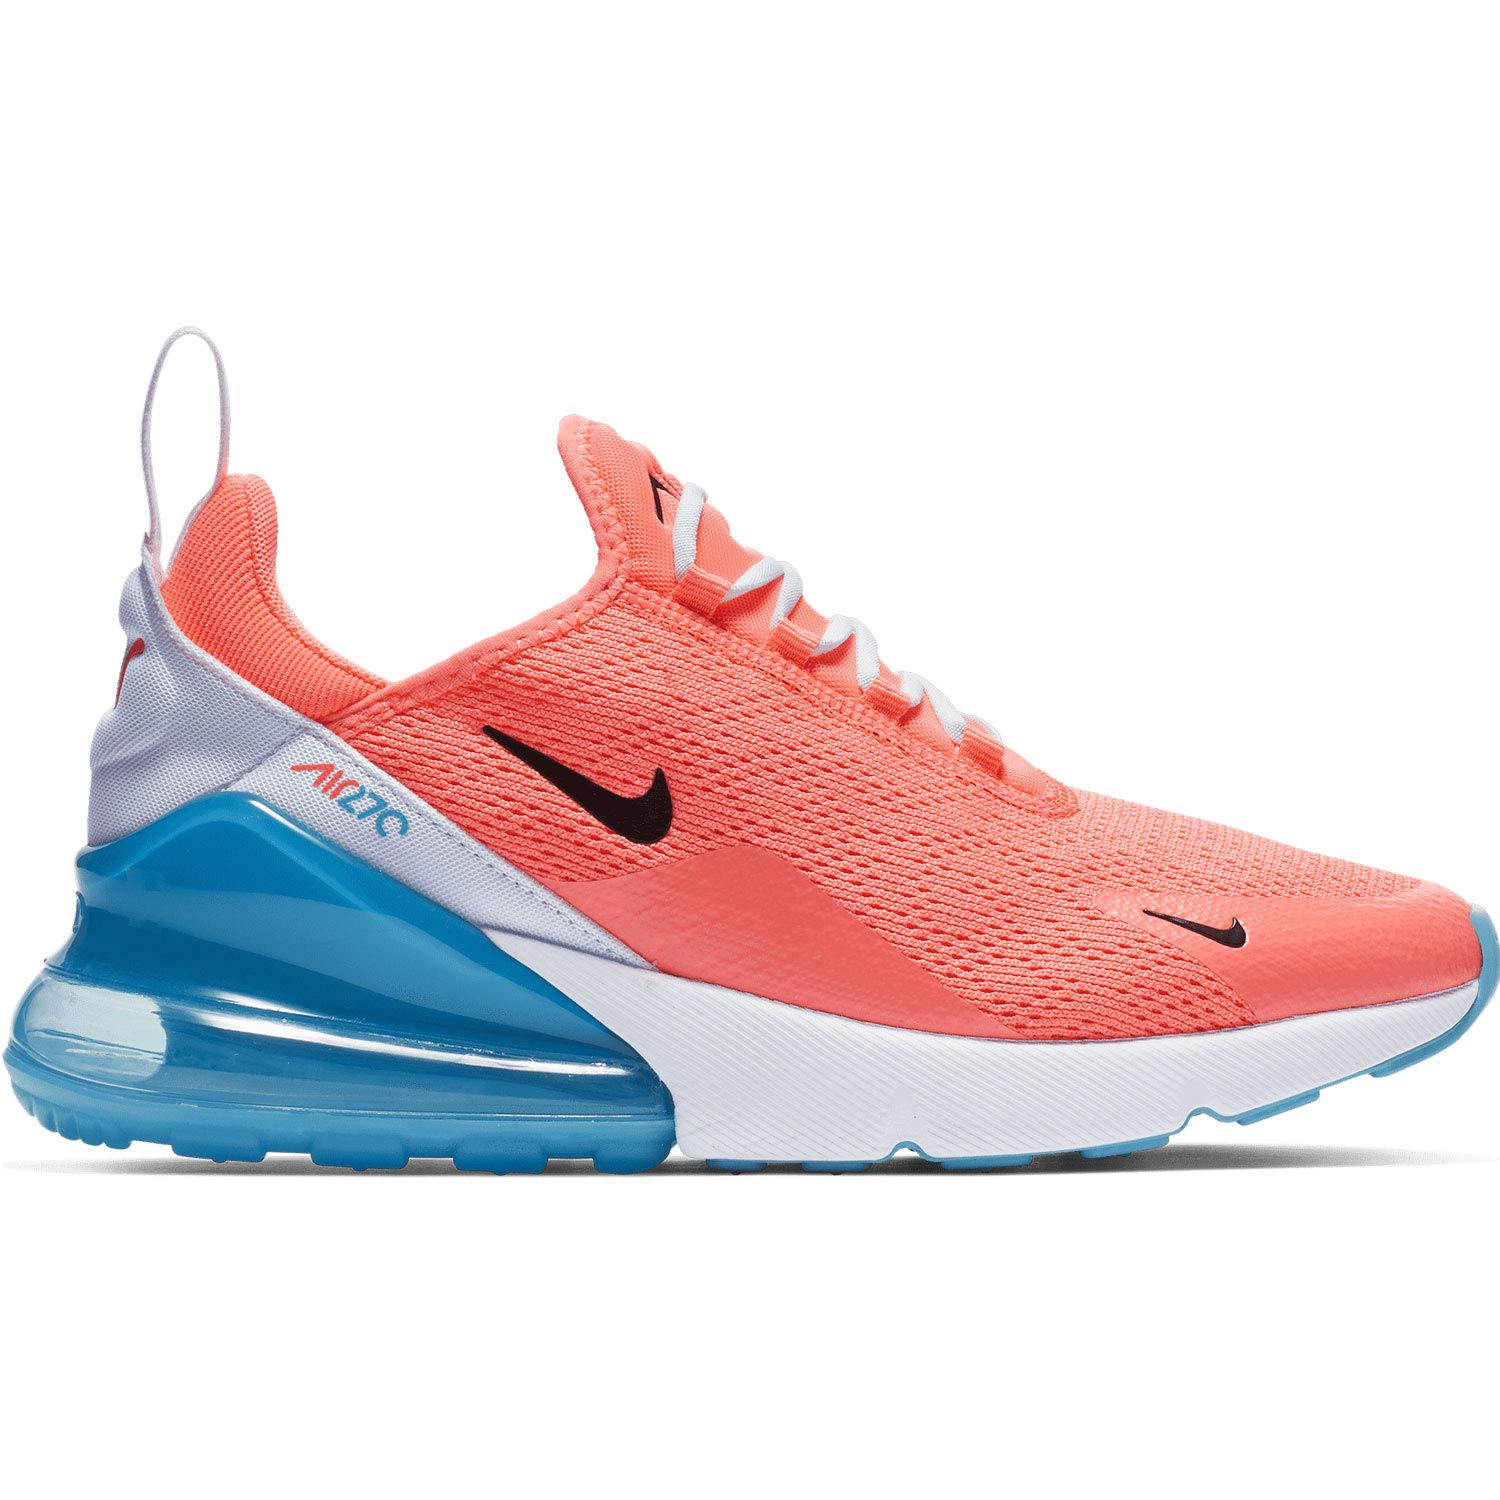 official photos 5d439 83684 Nike Women's Air Max 270 Running Shoe